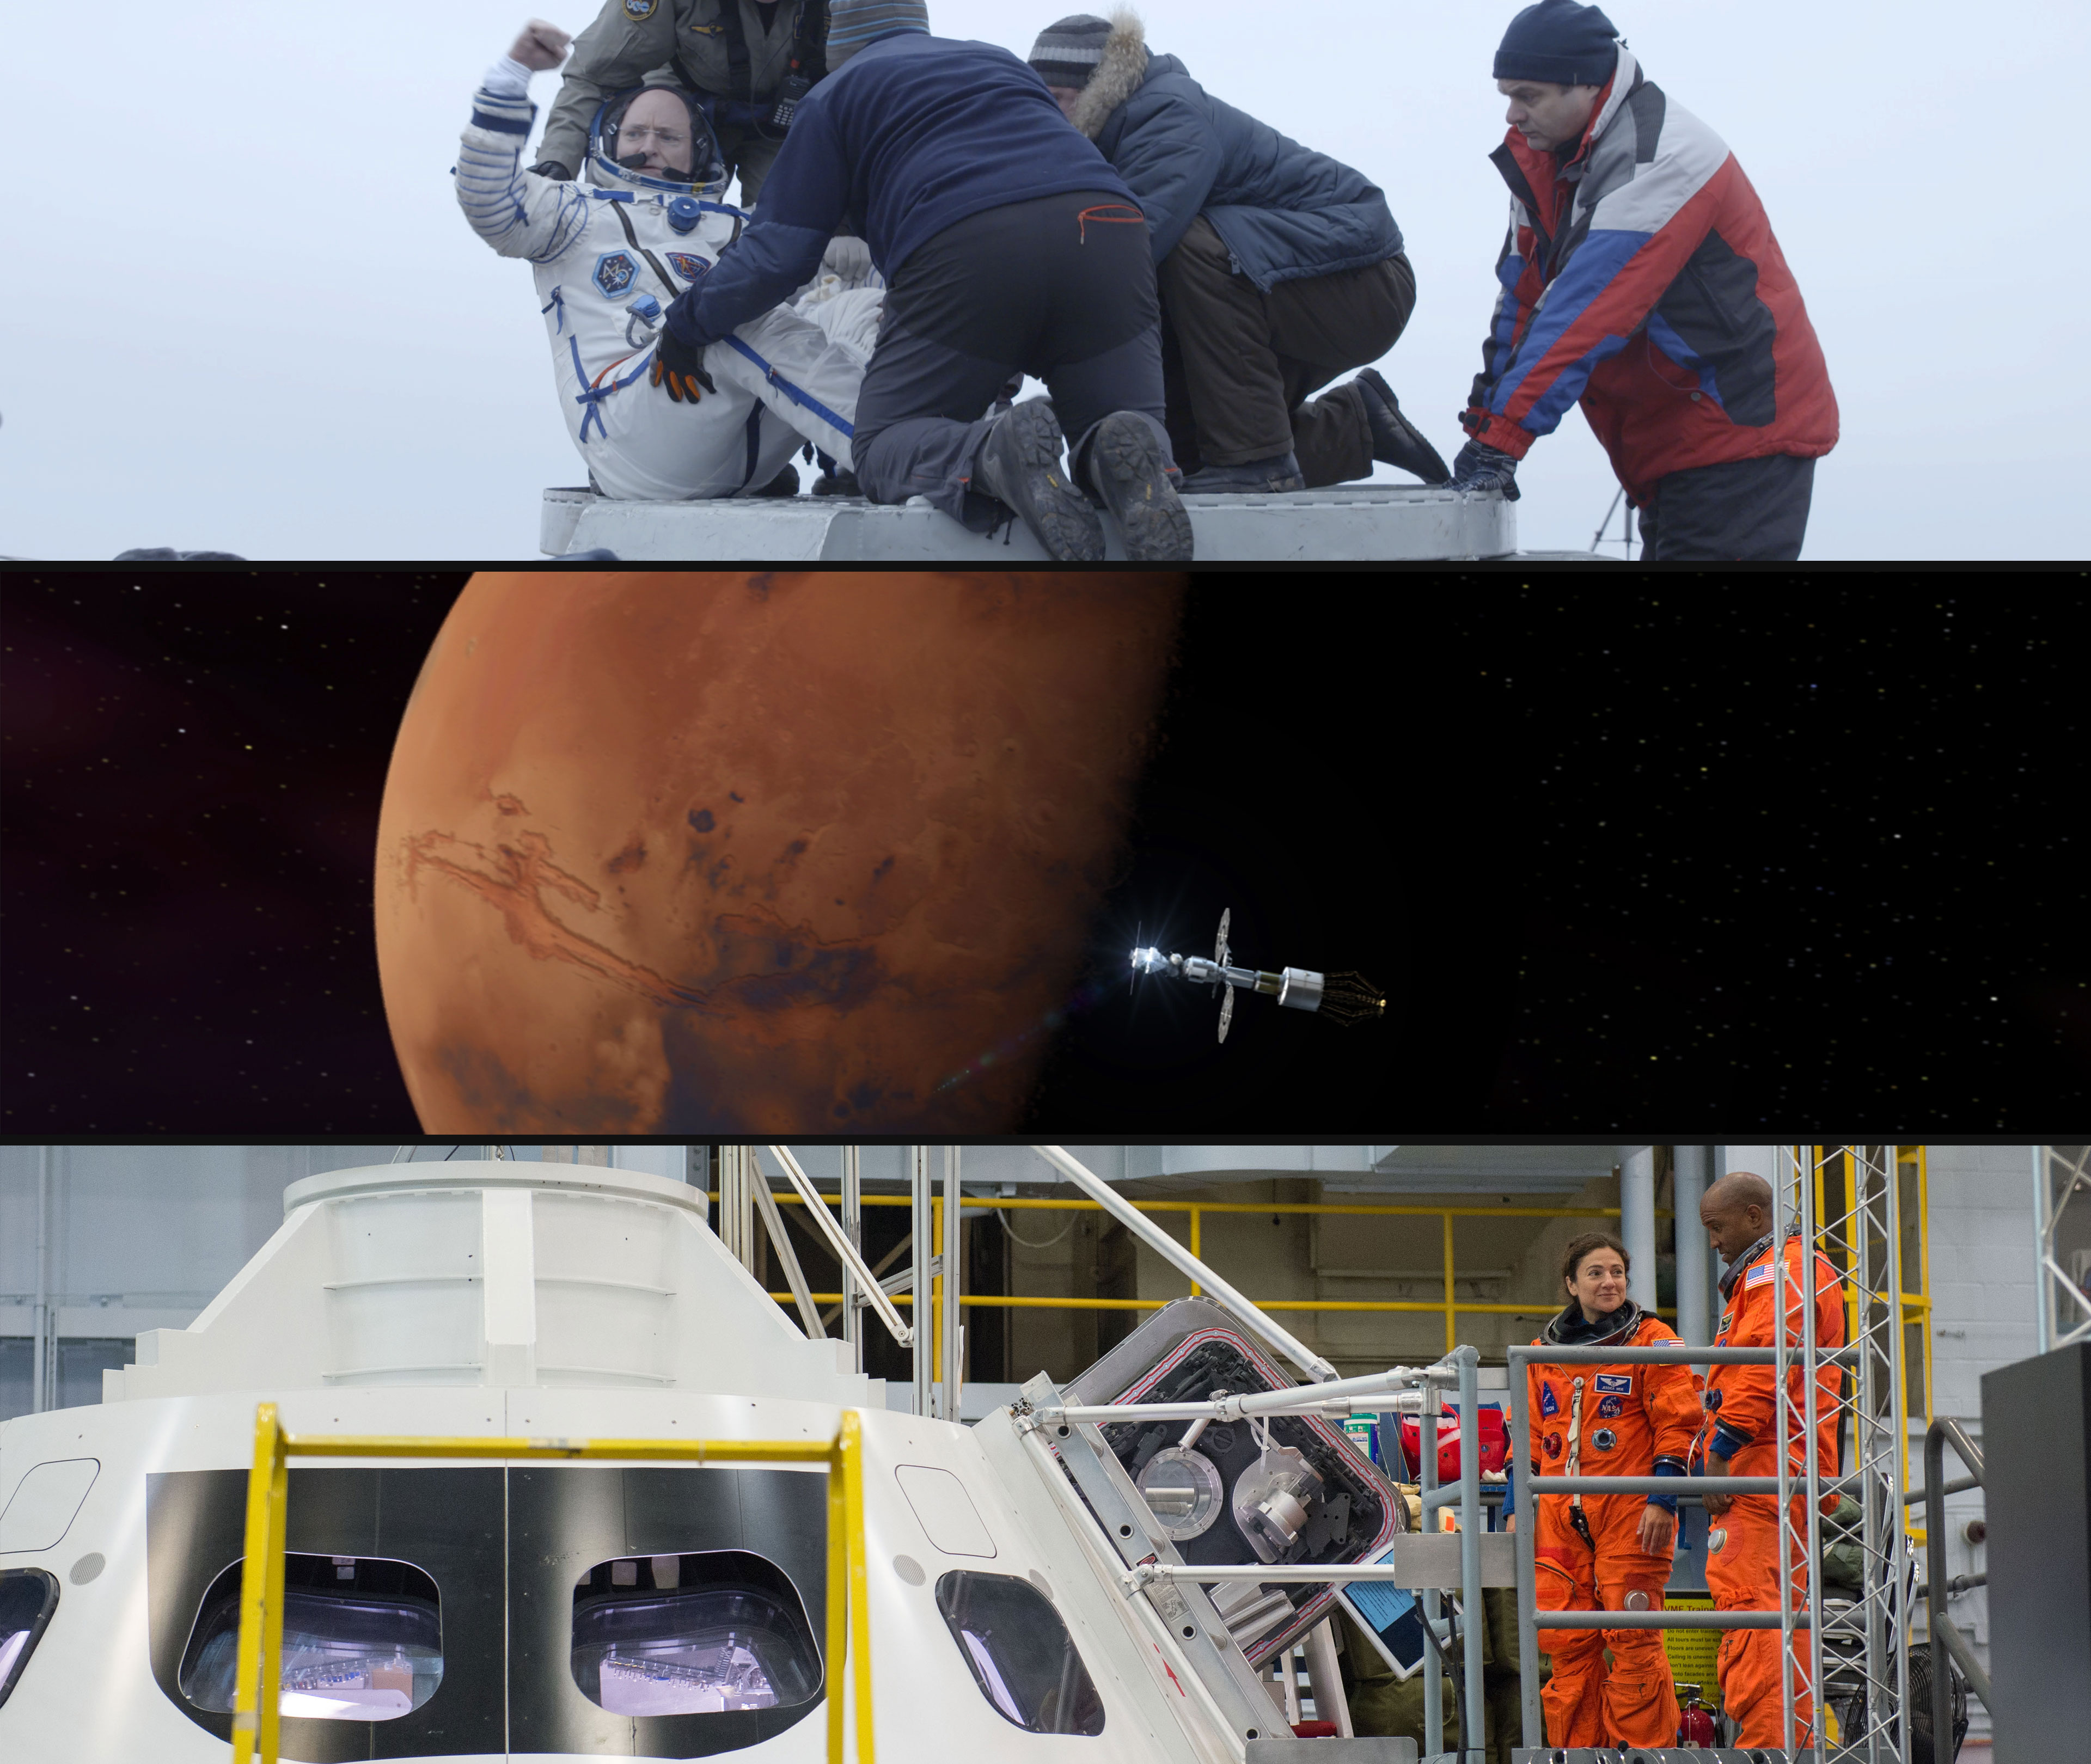 Top image: Astronaut Scott Kelly. Credit: Andrey Alistratov. Middle image: Mars. Credit: Space City Films. Bottom image: Astronauts Jessica Meir and Victor Glover. Credit: Lauren Harnett.